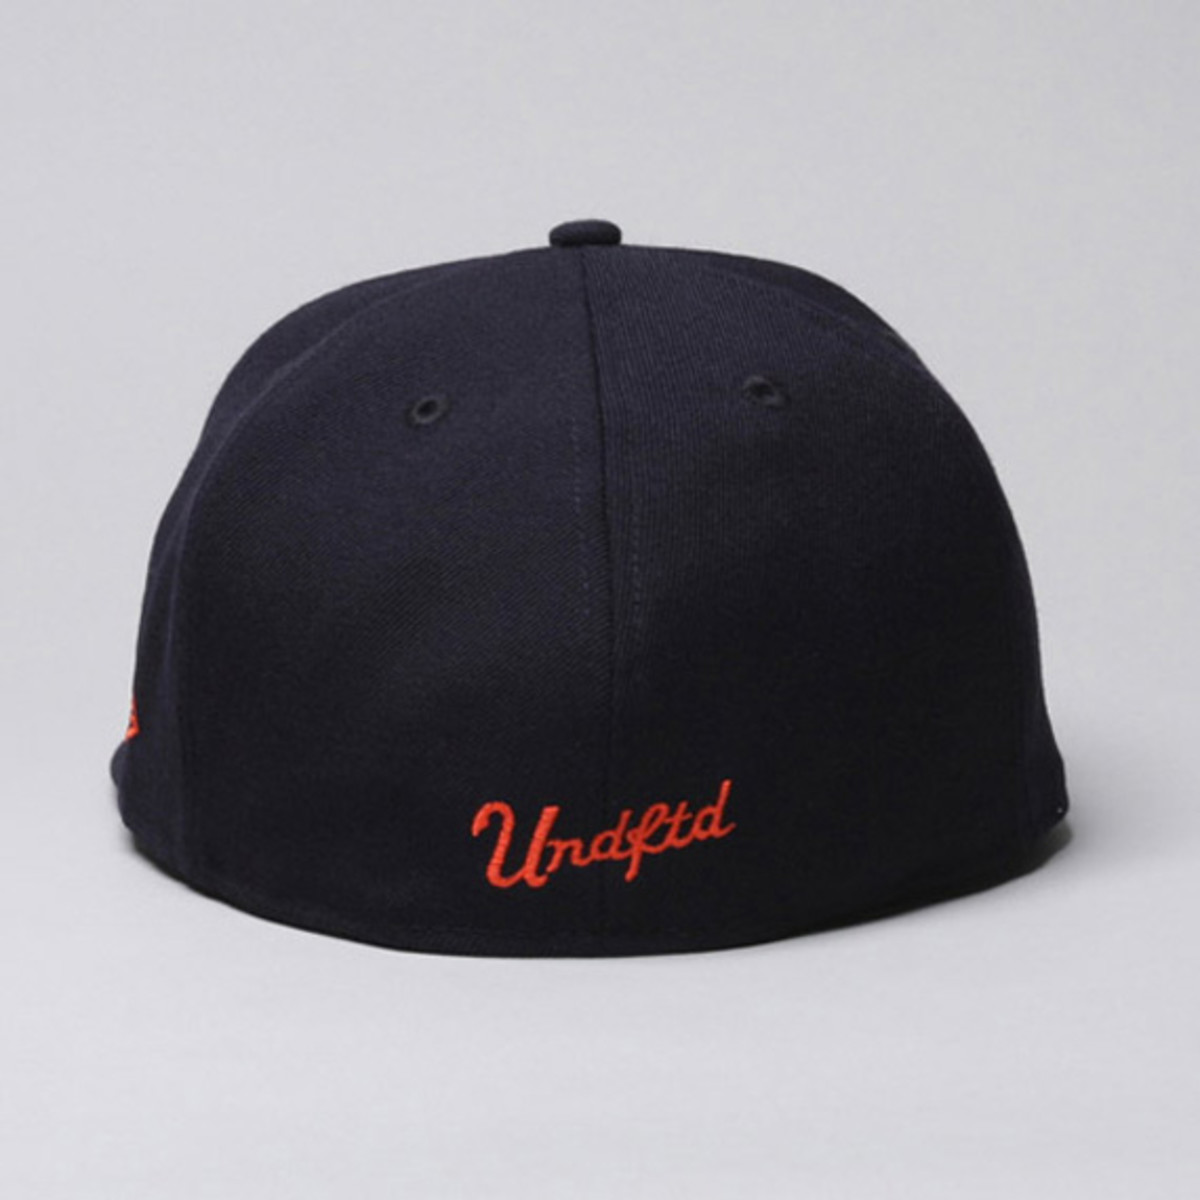 undefeated-spring-summer-2011-delivery-1-24